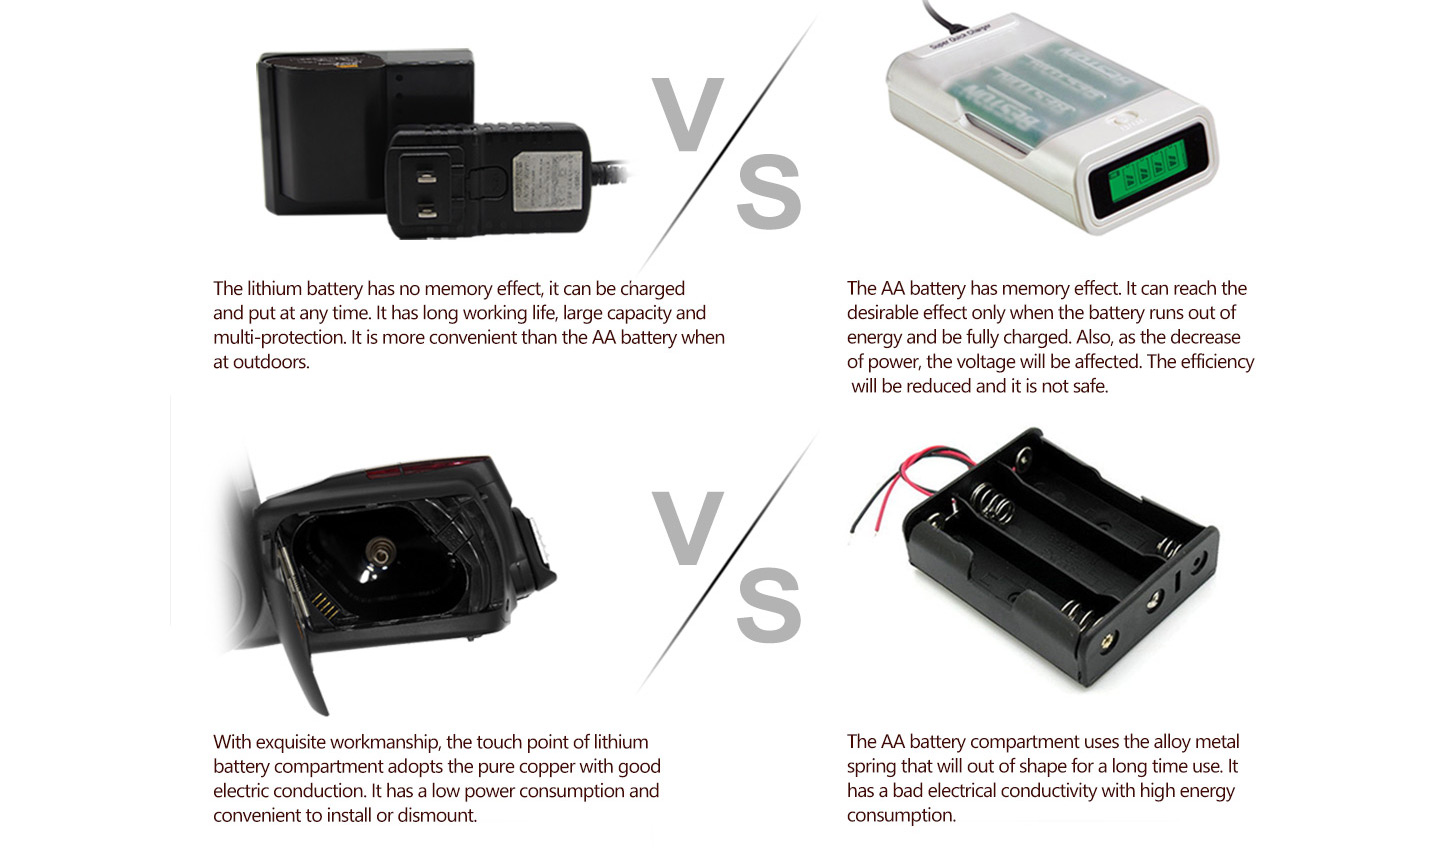 The explanation of the advantage of lithium battery